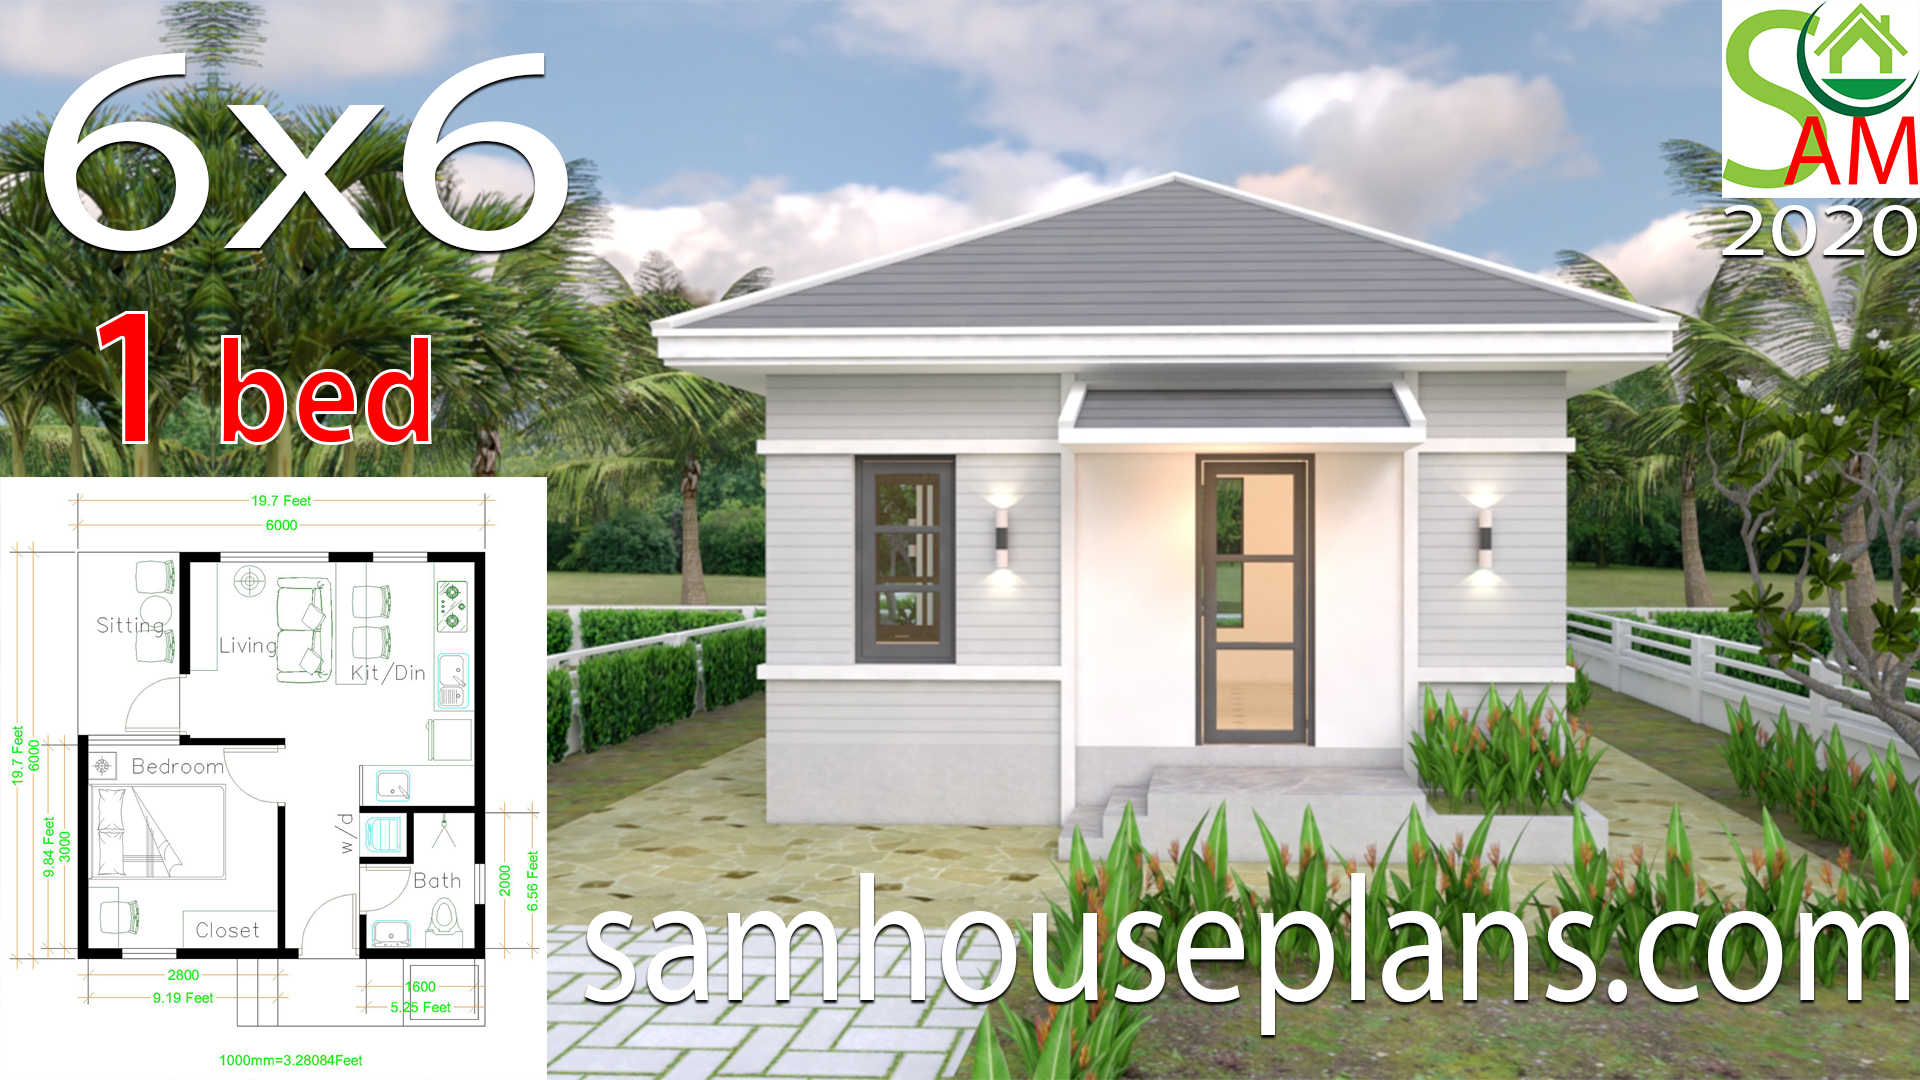 House Plans 6x6 With One Bedroom Hip Roof Samhouseplans